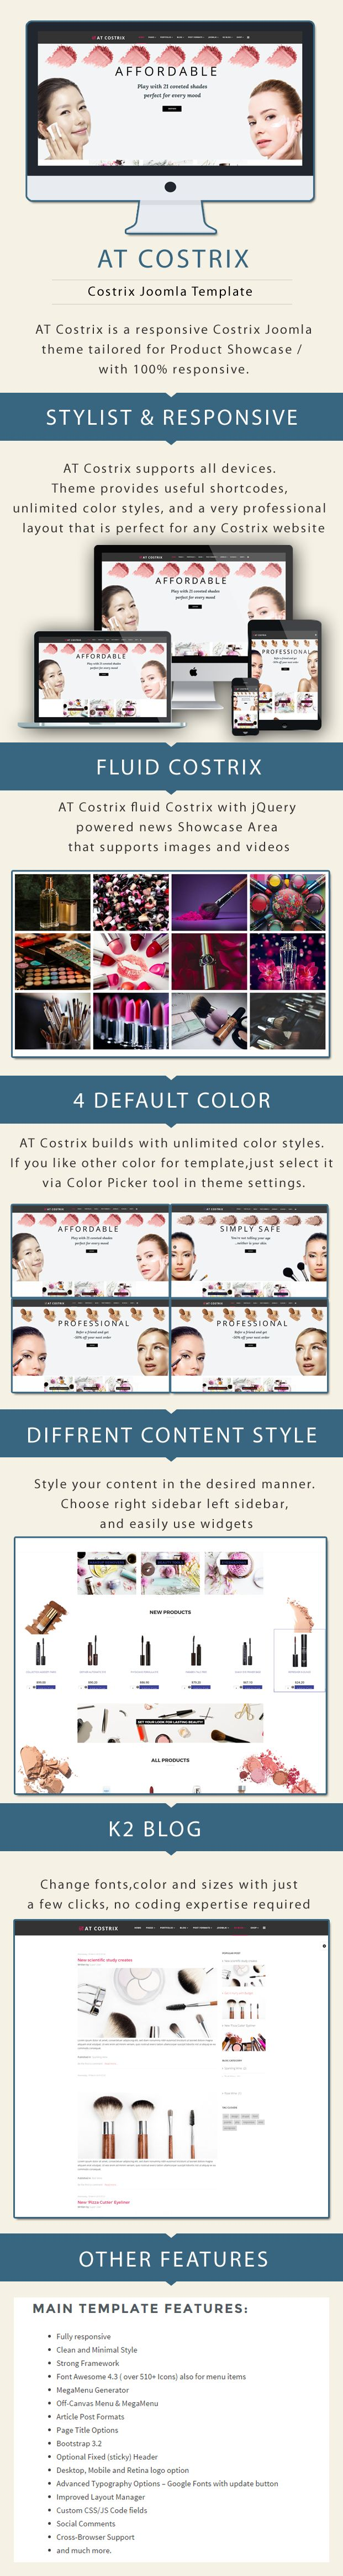 AT Costrix - Cosmetics Virtuemart Joomla Template Screenshot 1